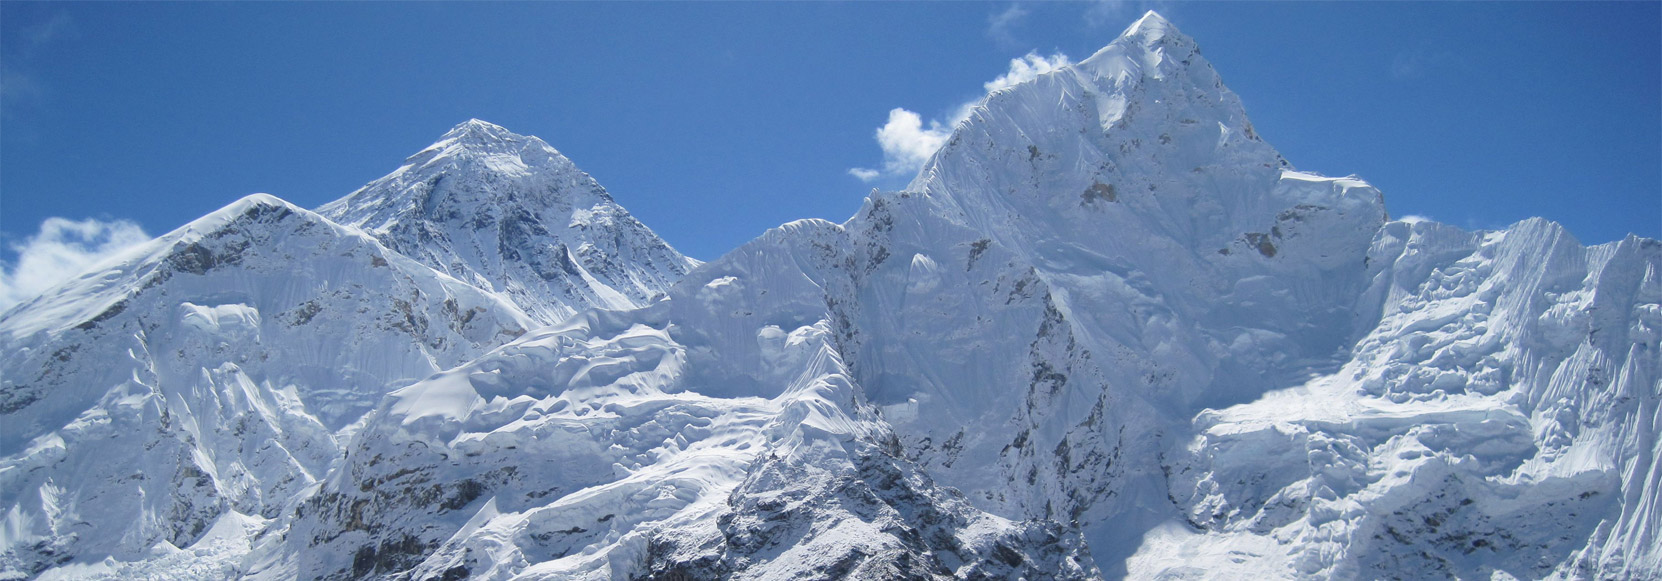 Mount Everest and  Mount Lhotse